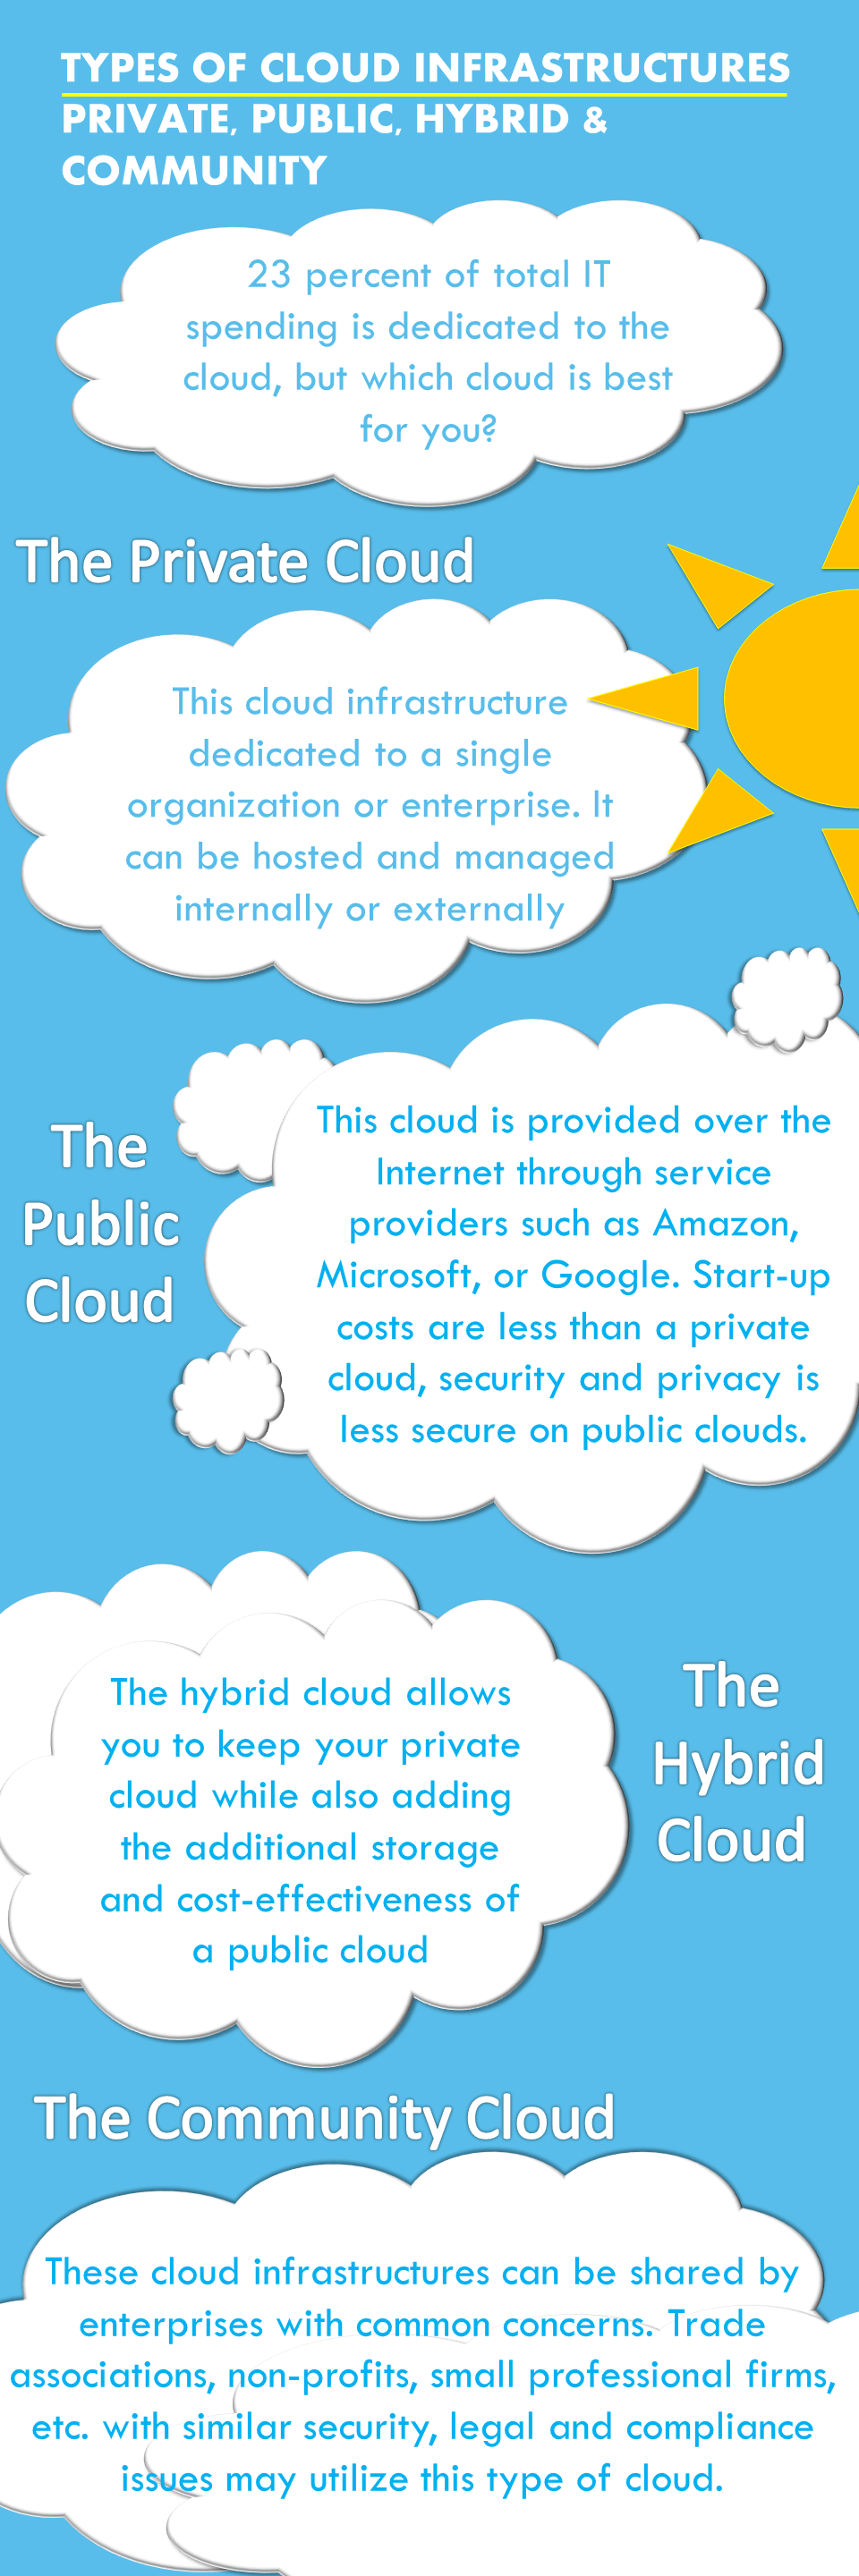 Types of Cloud Infrastructures: Private, public, hybrid AND community [INFOGRAPHIC]